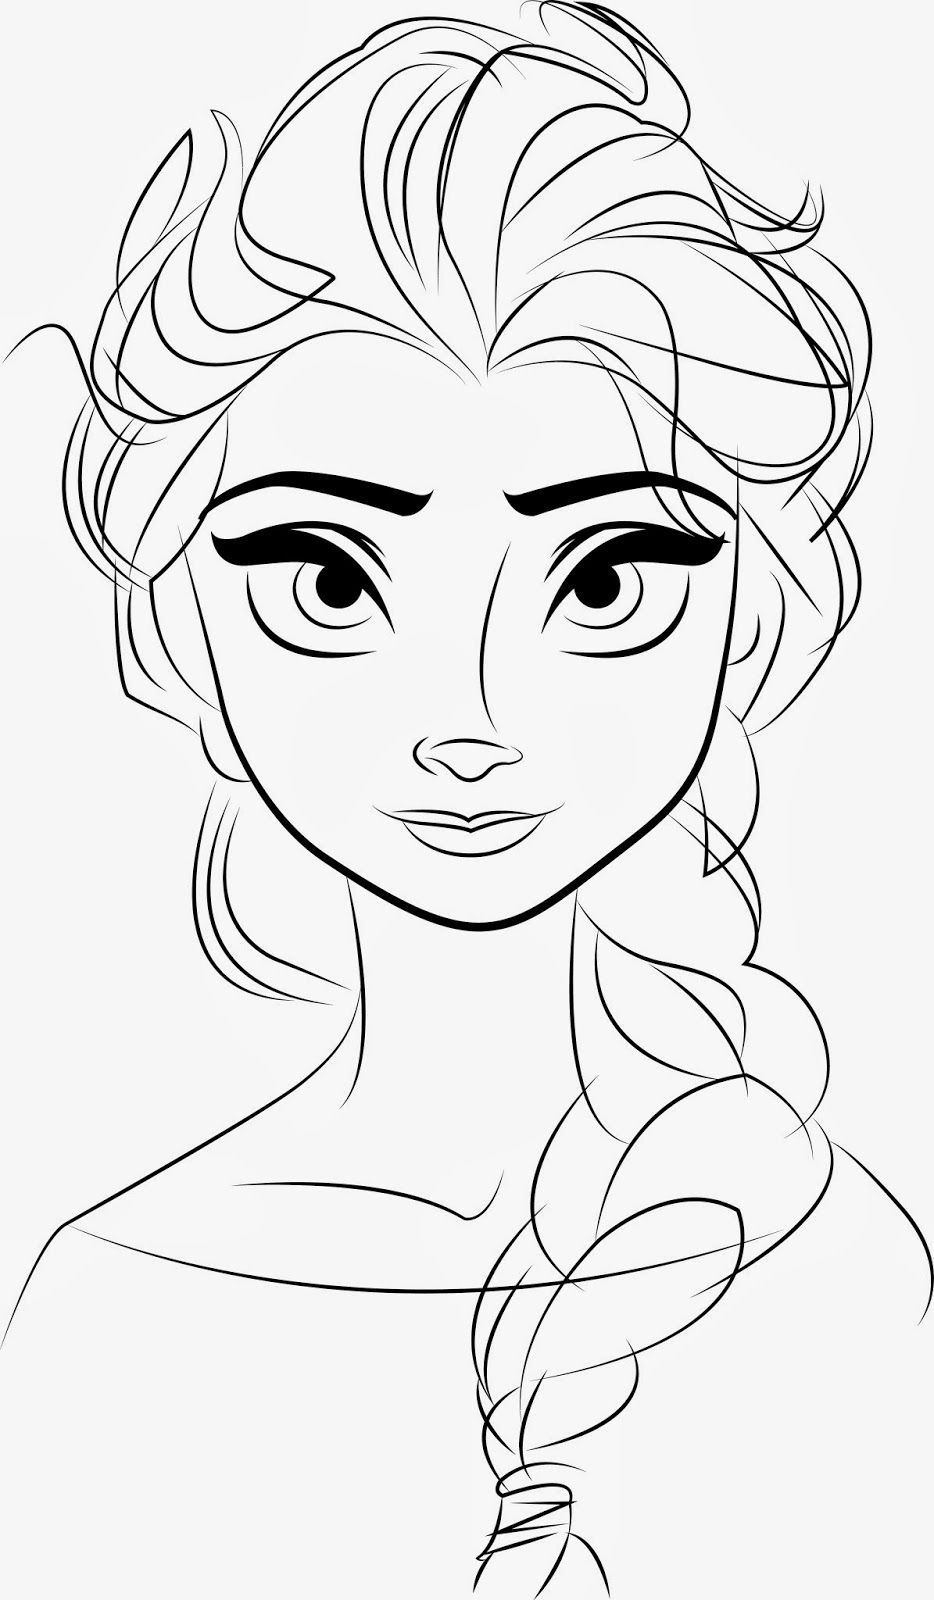 elsa drawing easy how to draw elsa from frozen with easy step by step elsa easy drawing